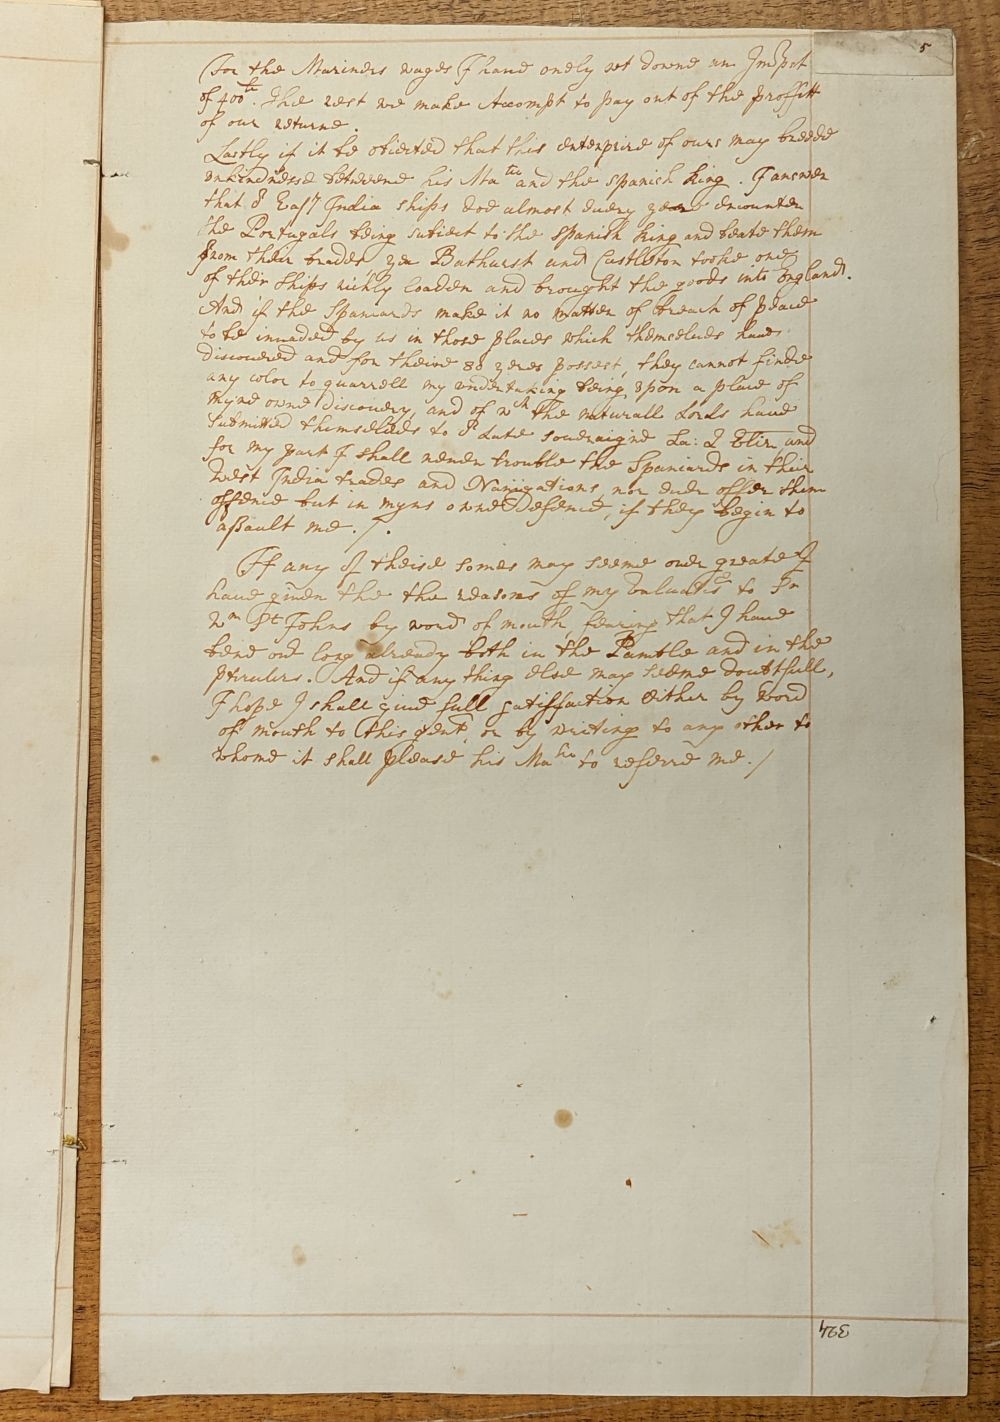 * West Indies. Manuscript application for funds and assistance... , mid 18th century - Image 5 of 6